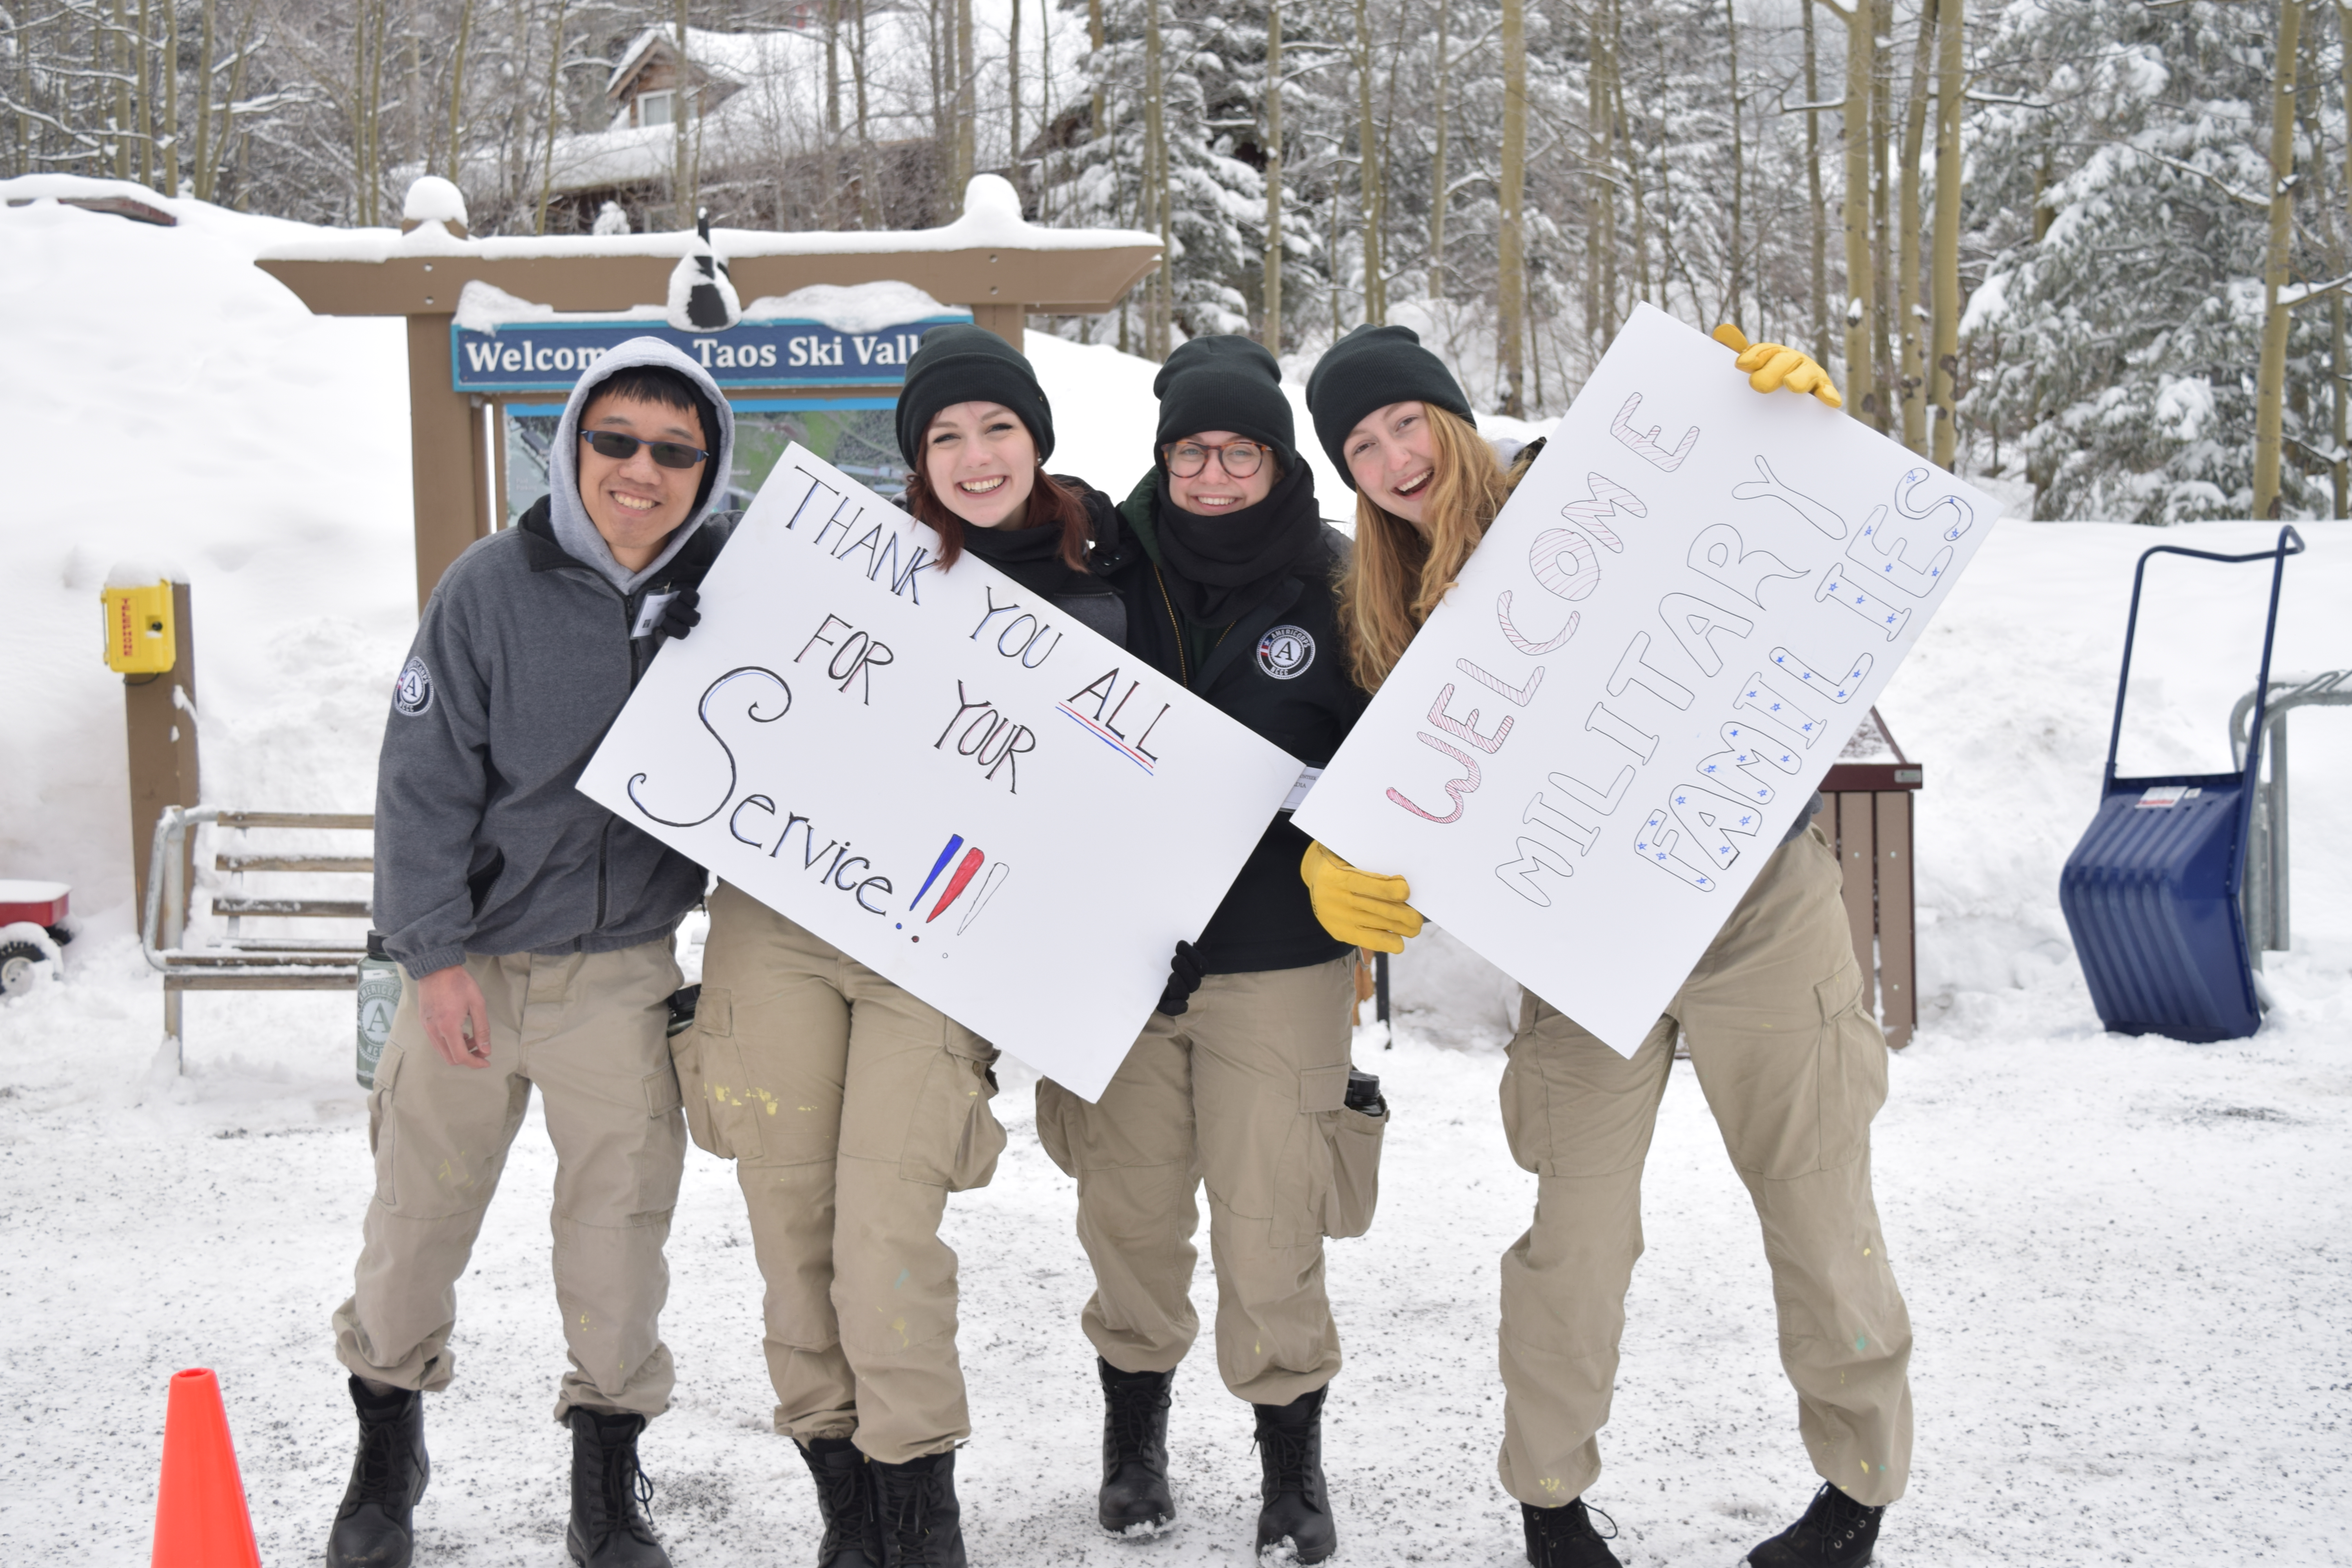 Four young adults in cargo pants and black boots at Taos Ski Valley holding signs welcoming and thanking military families.